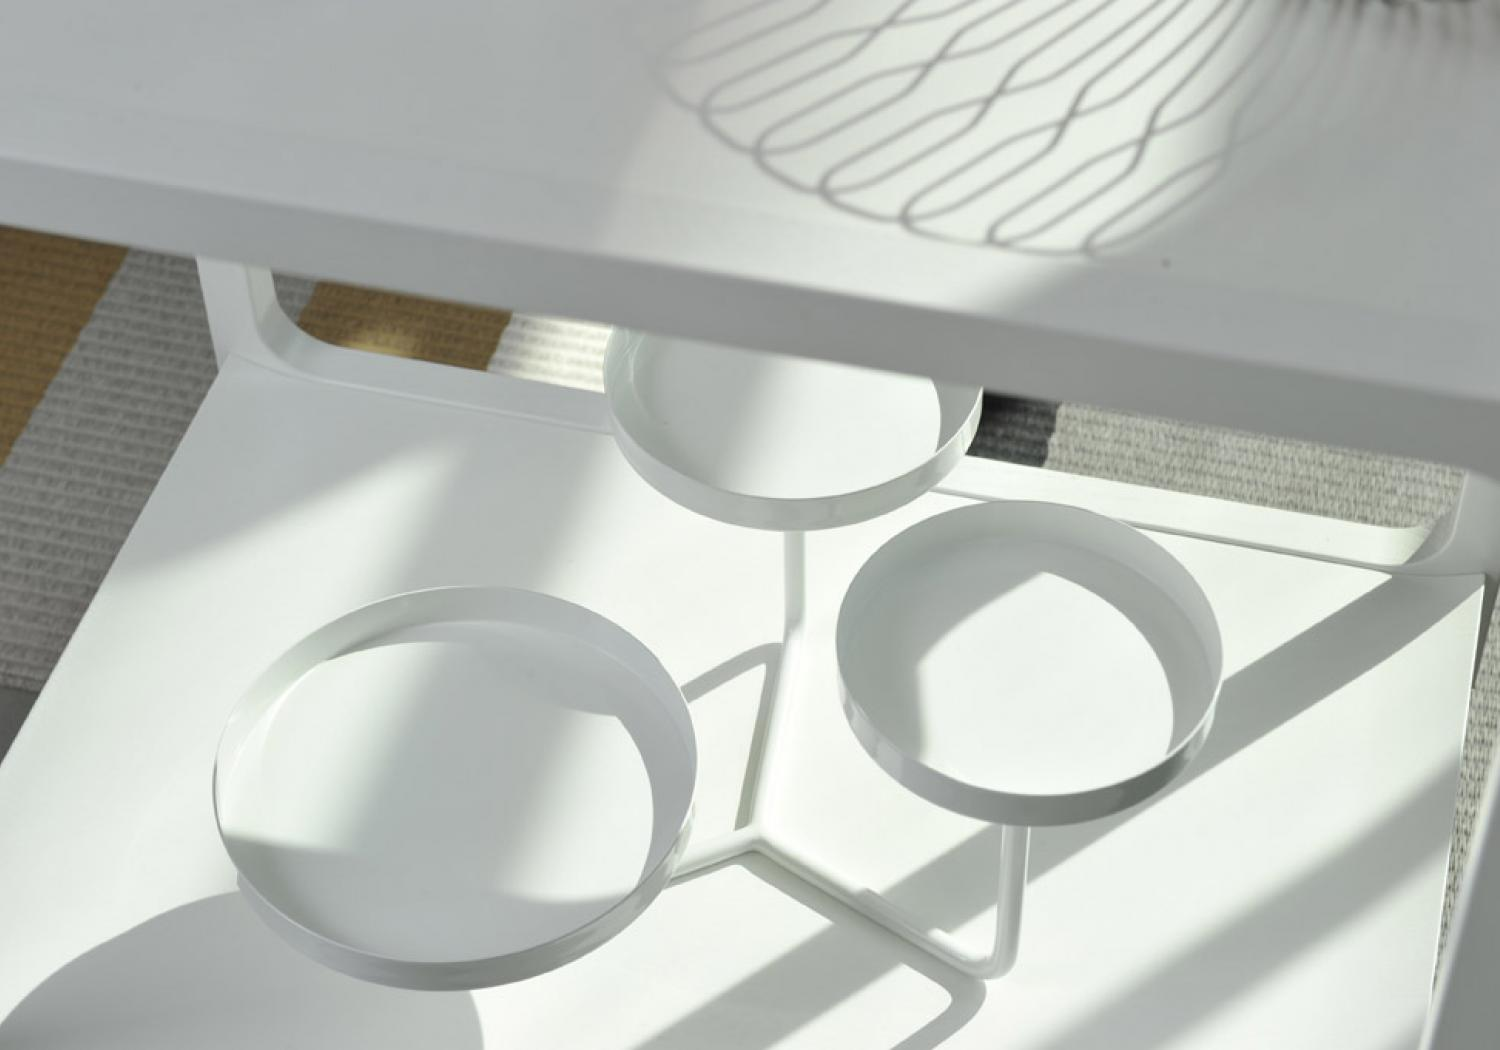 Swedese / Asplund - Tea Time tea trolley by Claesson Koivisto Rune / Cookie etagere by Stina Sandwall